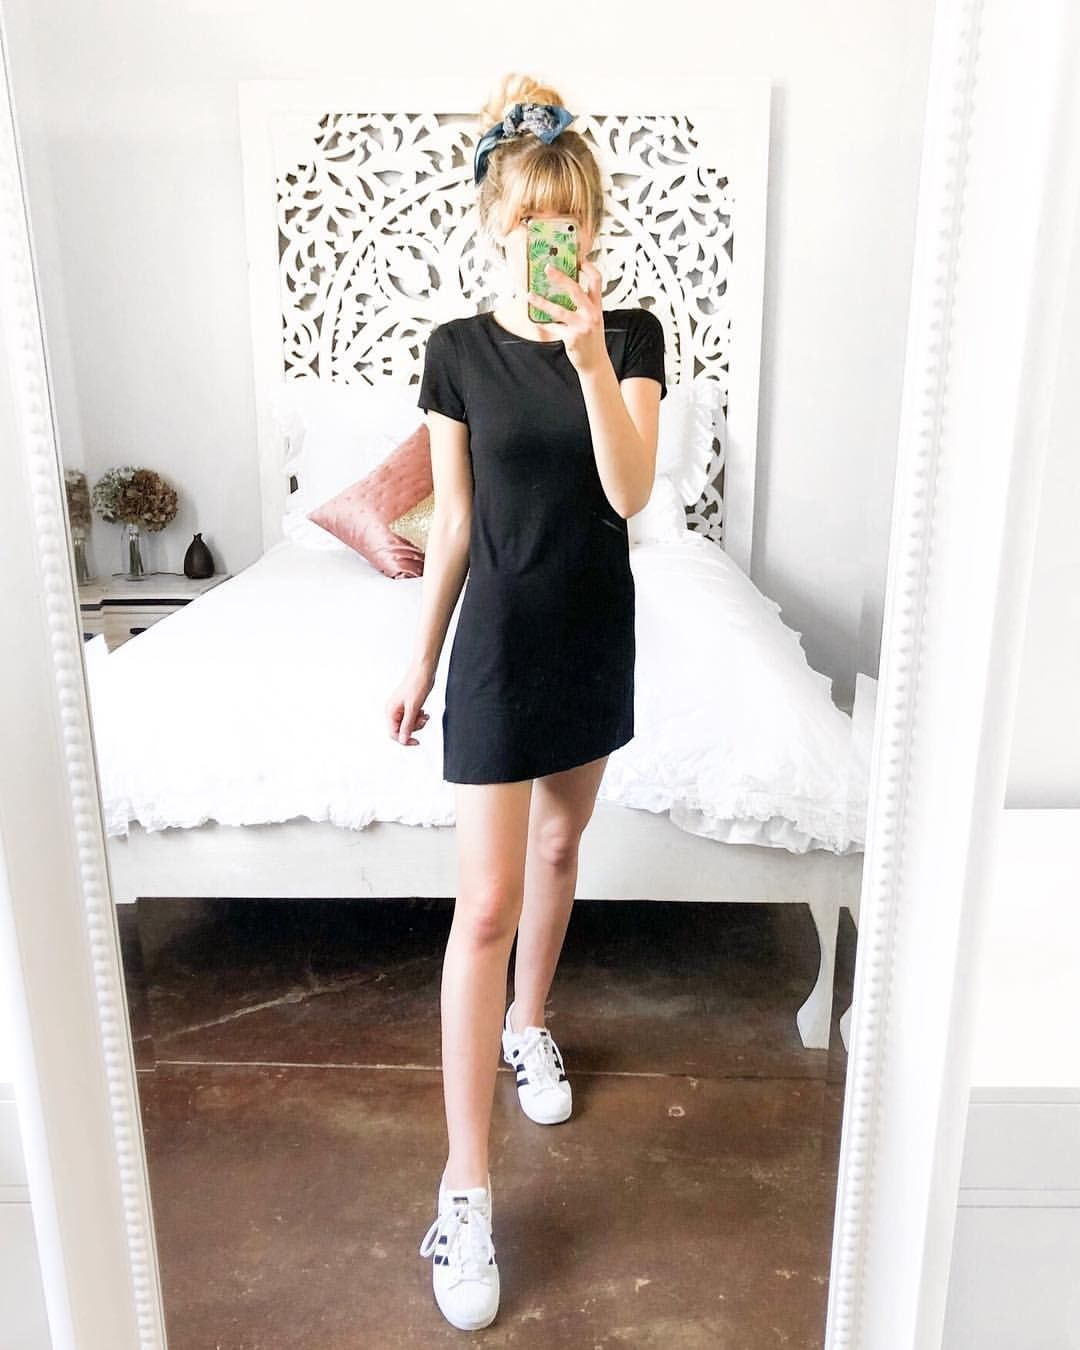 T-shirt dress and adidas trainers